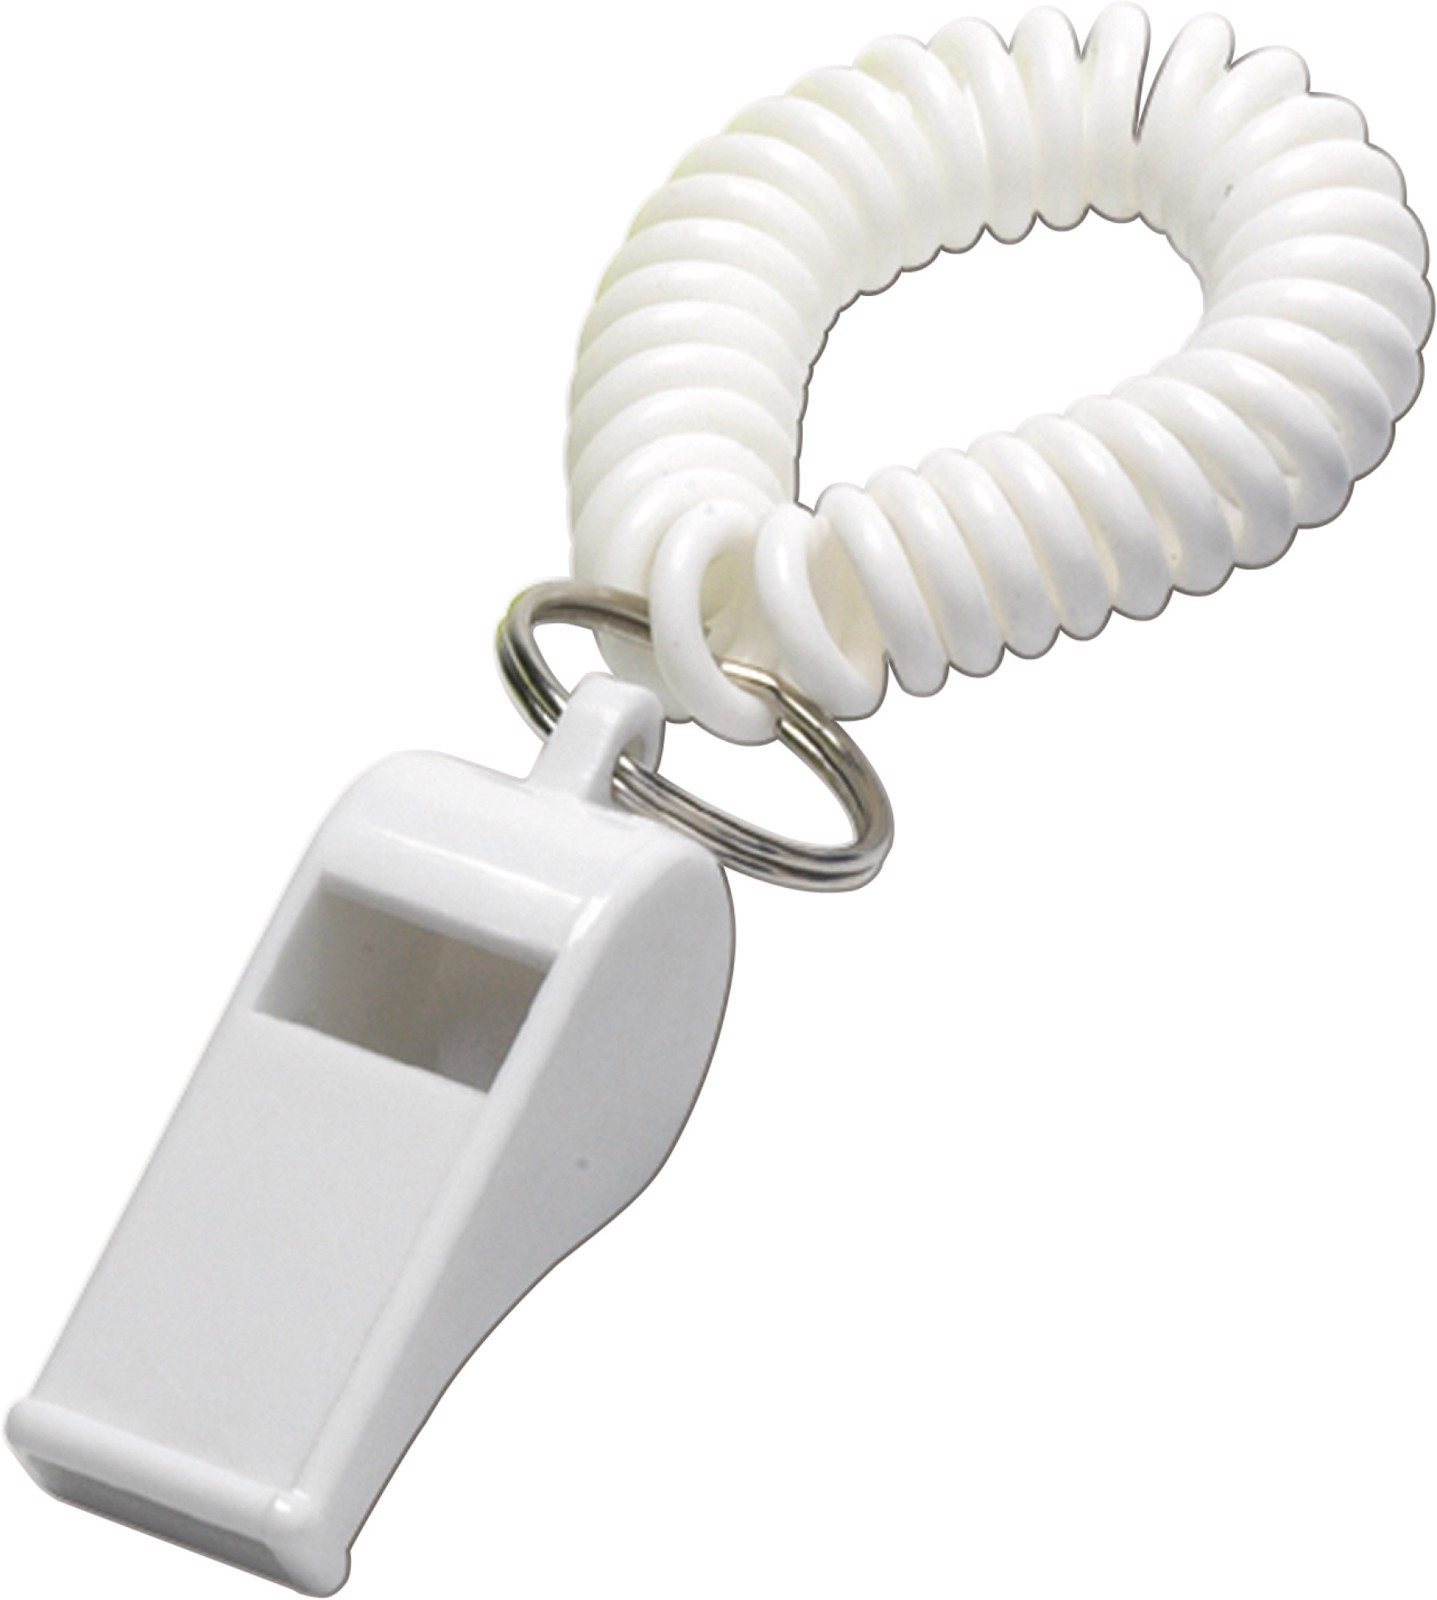 ABS whistle - White